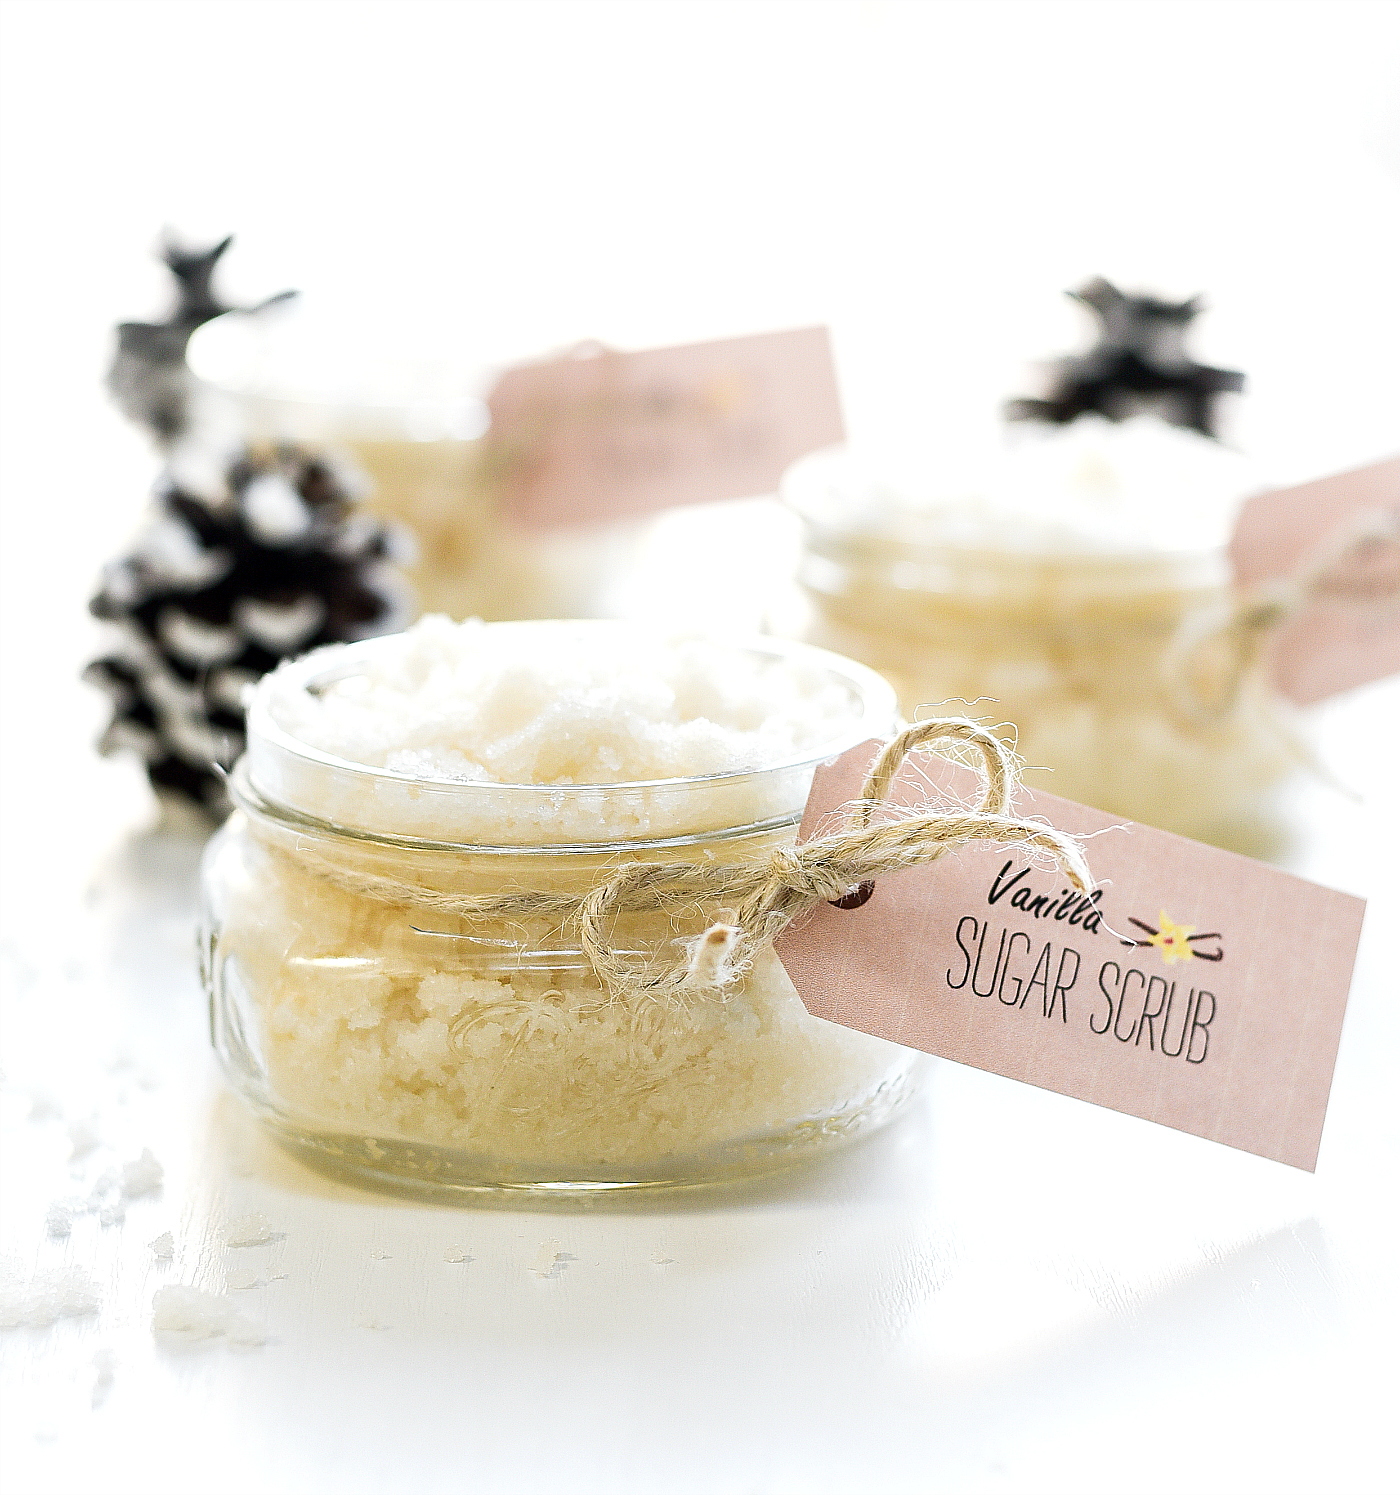 Vanilla Sugar Scrub Recipe - Homemade Sugar Scrub Recipe Ideas